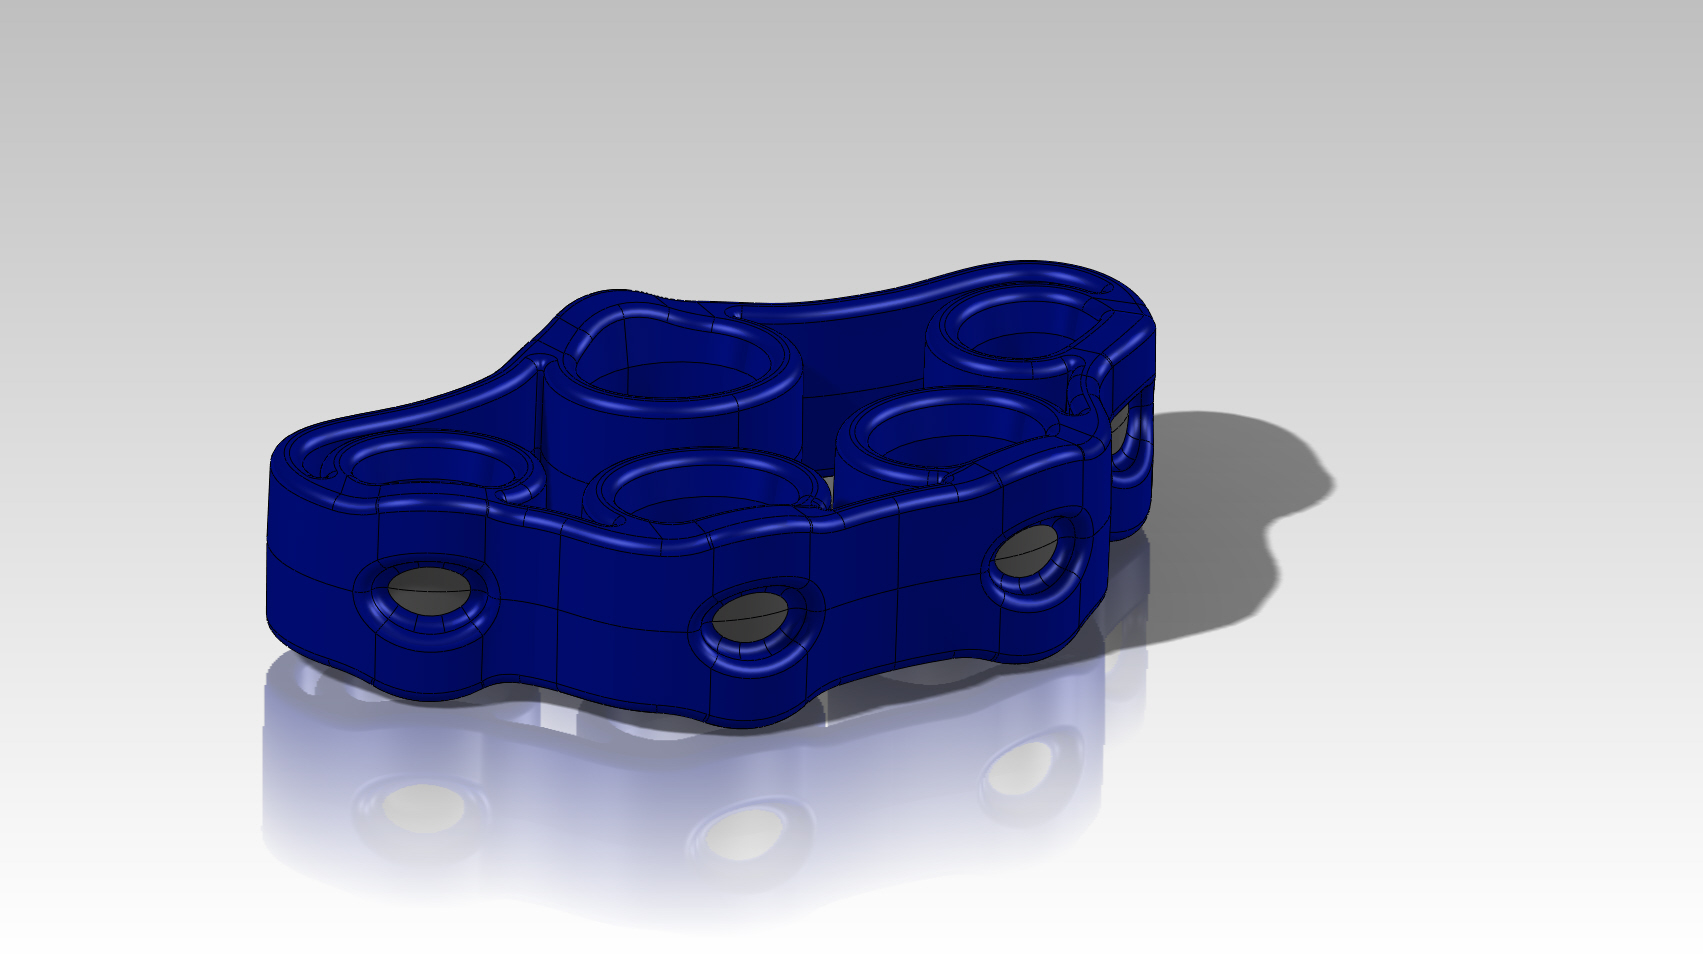 Solidworks prototype model Xband_ver8.3pic2